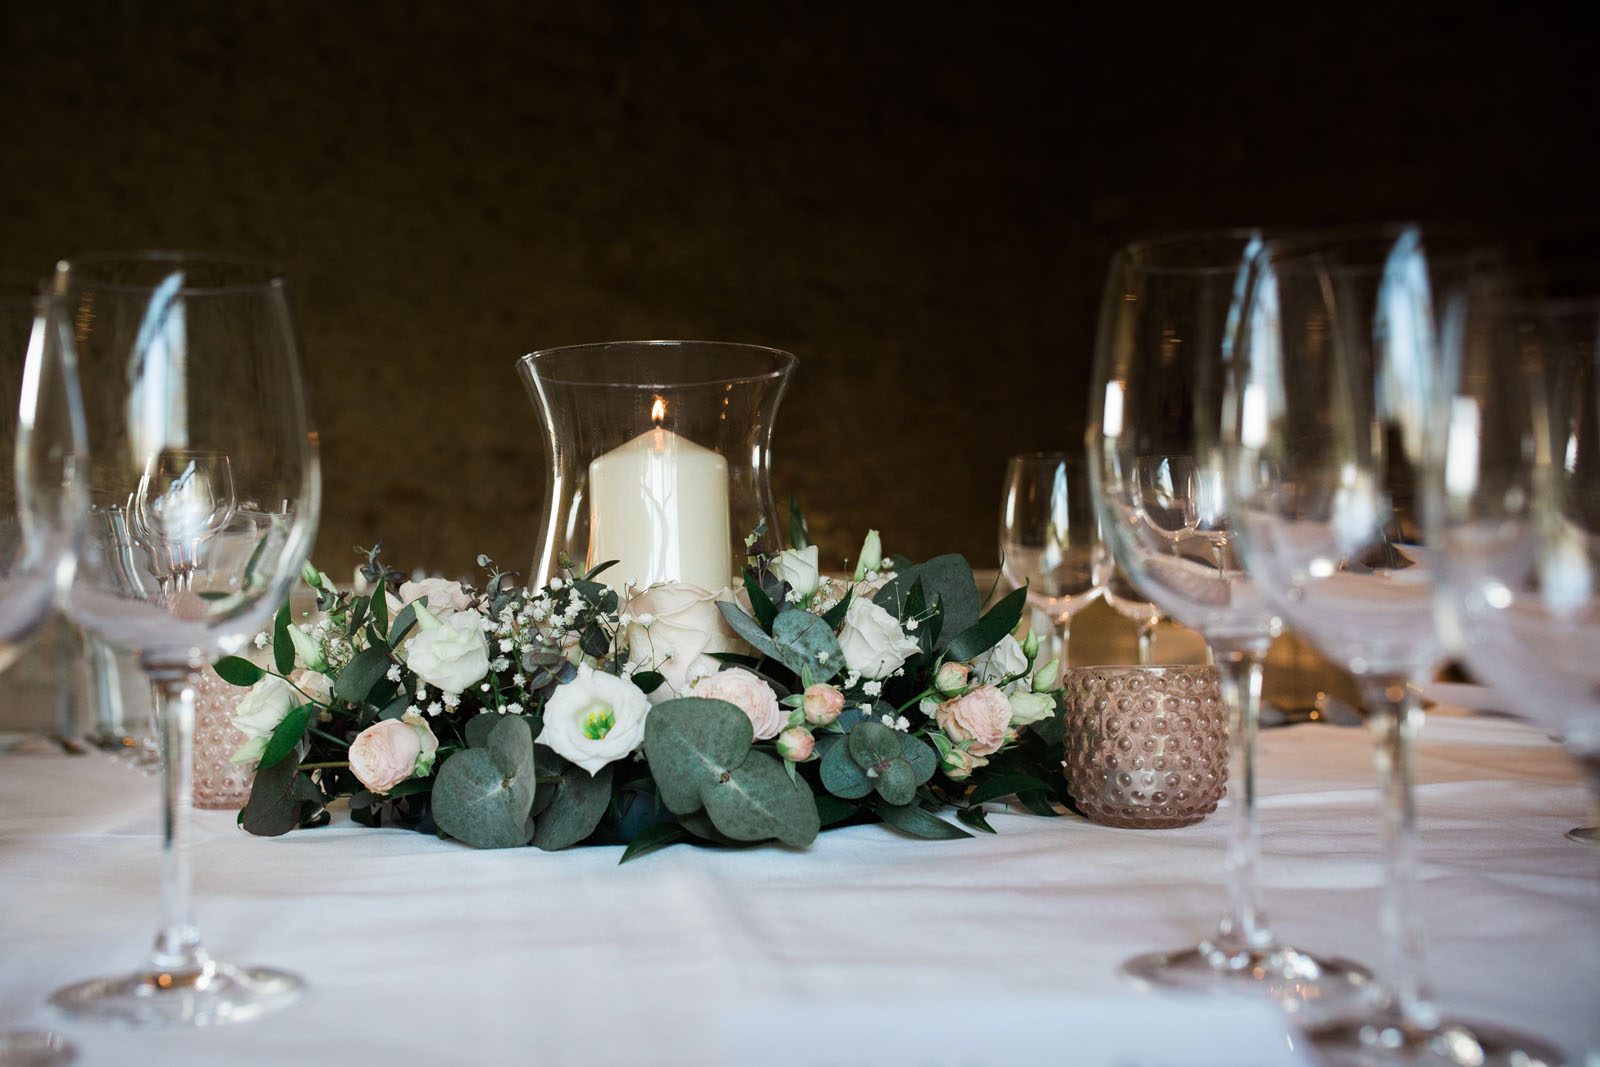 Notley Abbey wedding venue - table setting